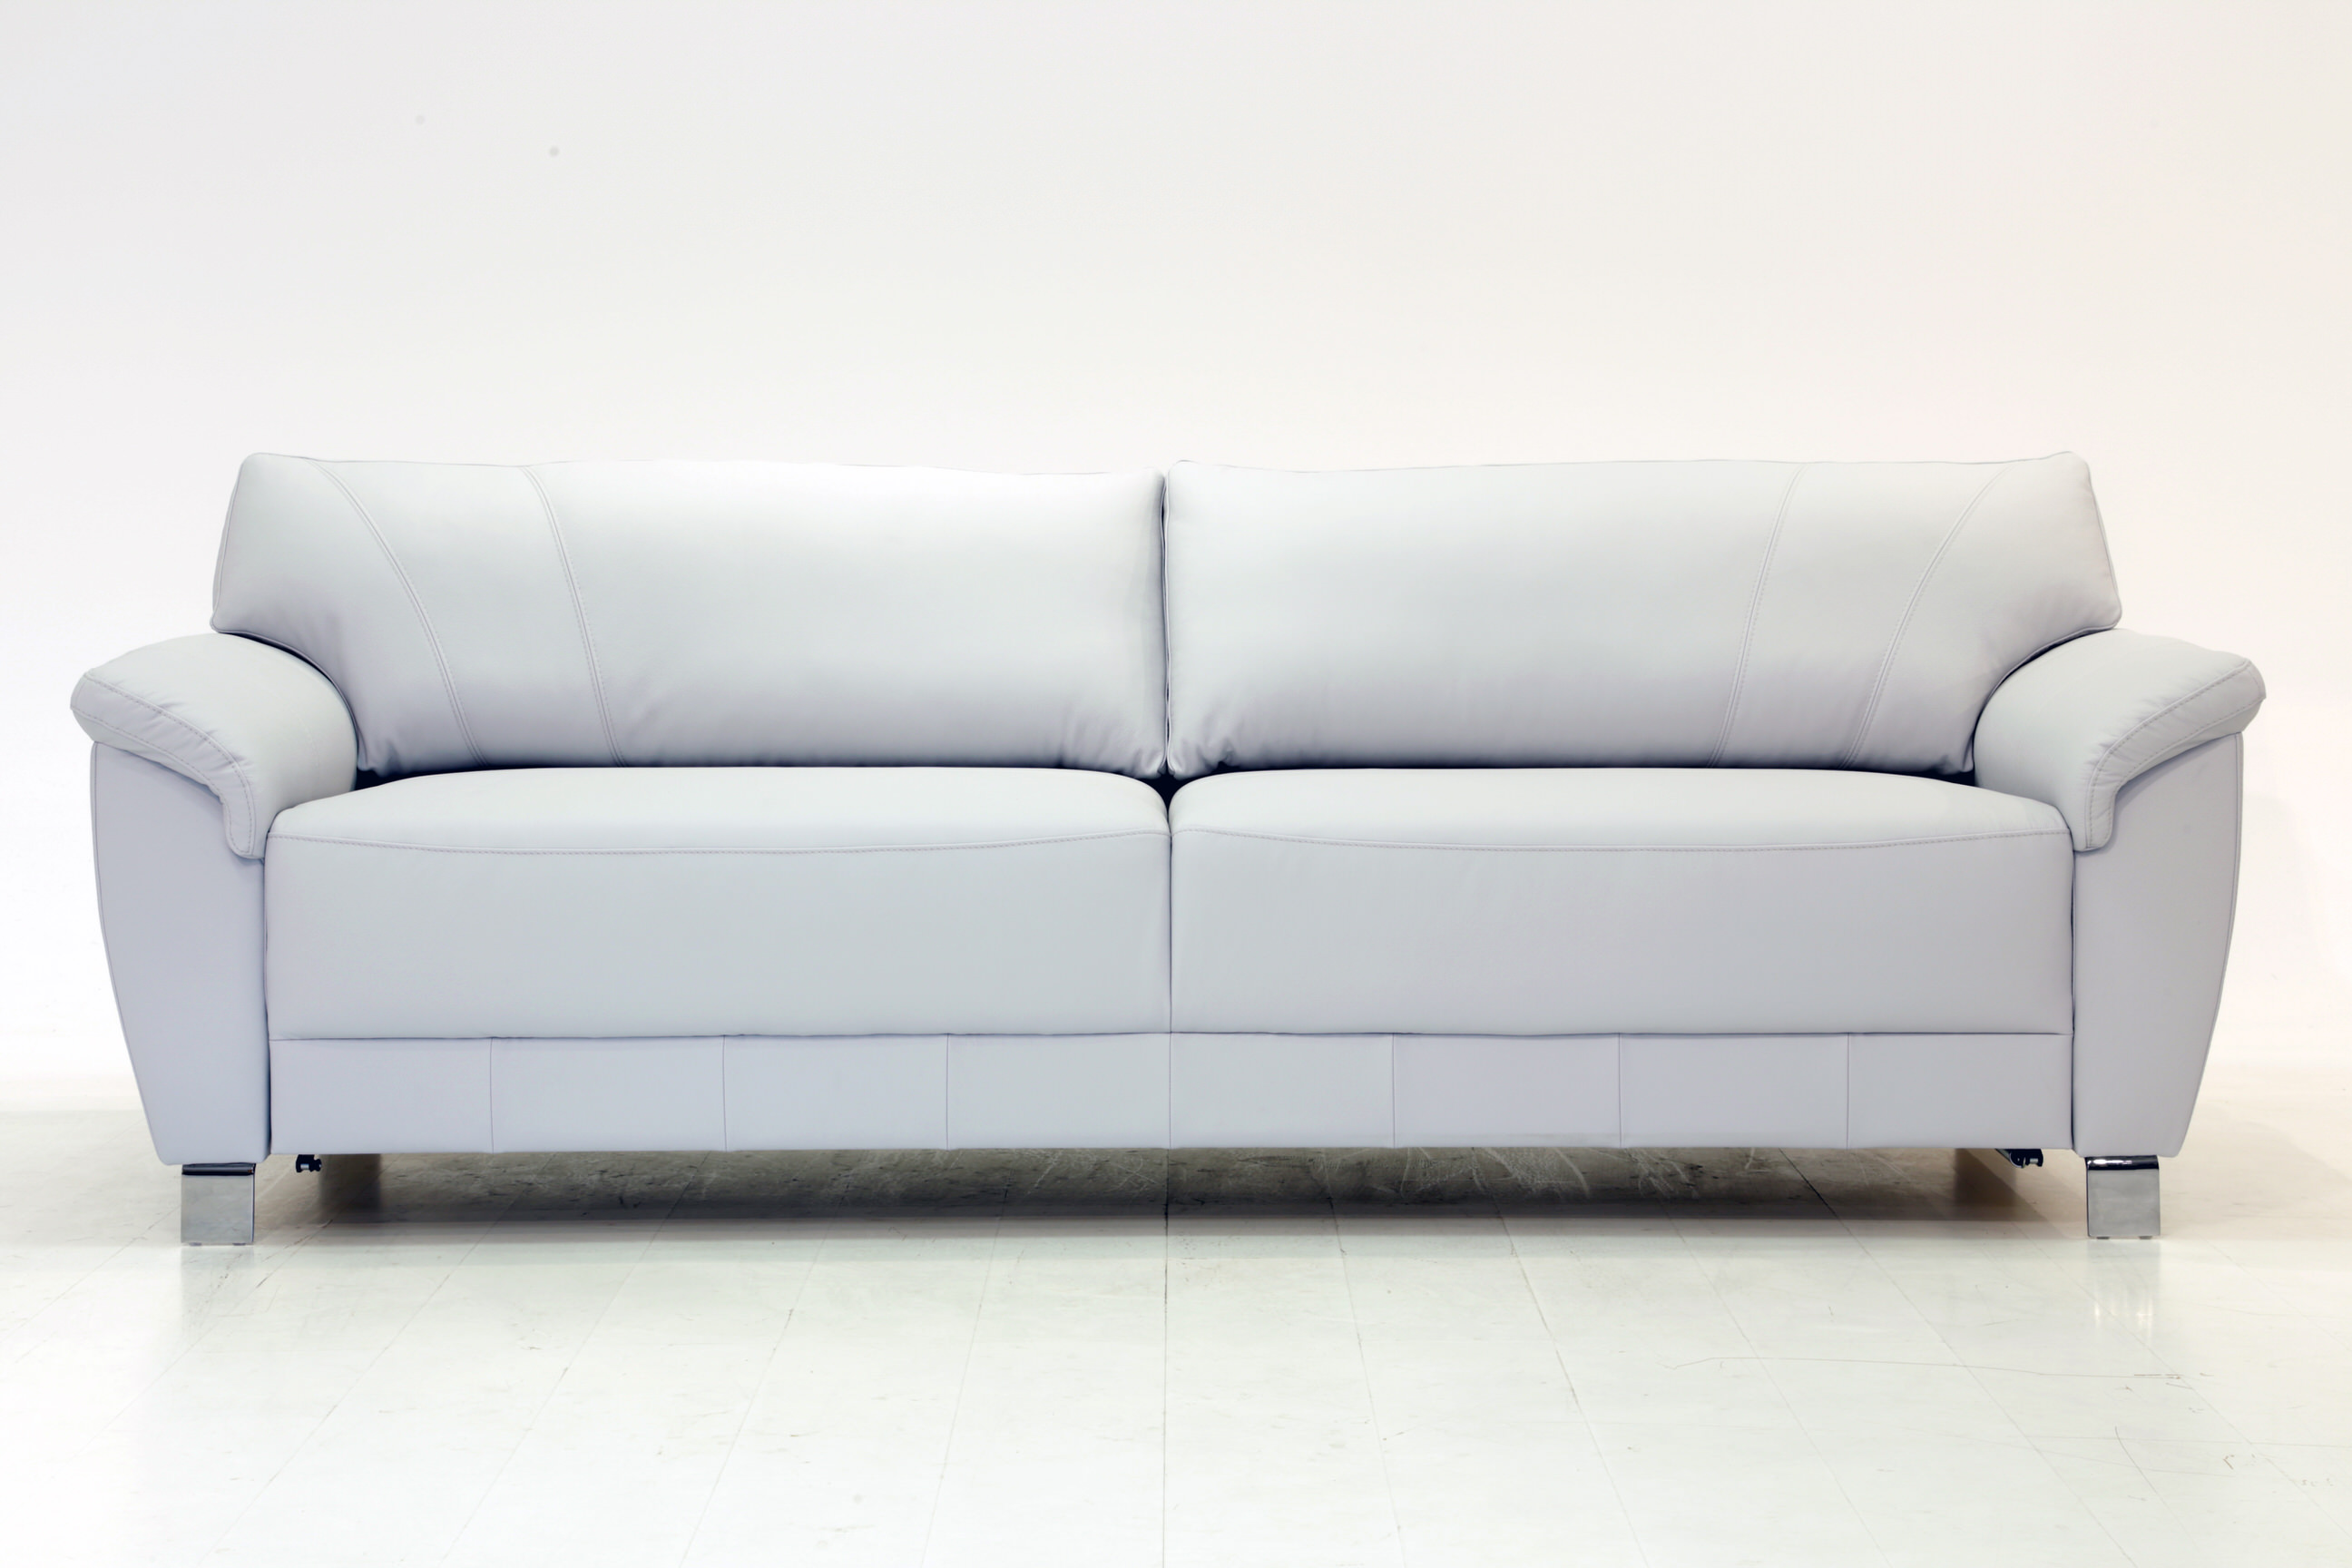 Sofa Grace Grace Sofa Sleeper Full Xl Size By Luonto Furniture